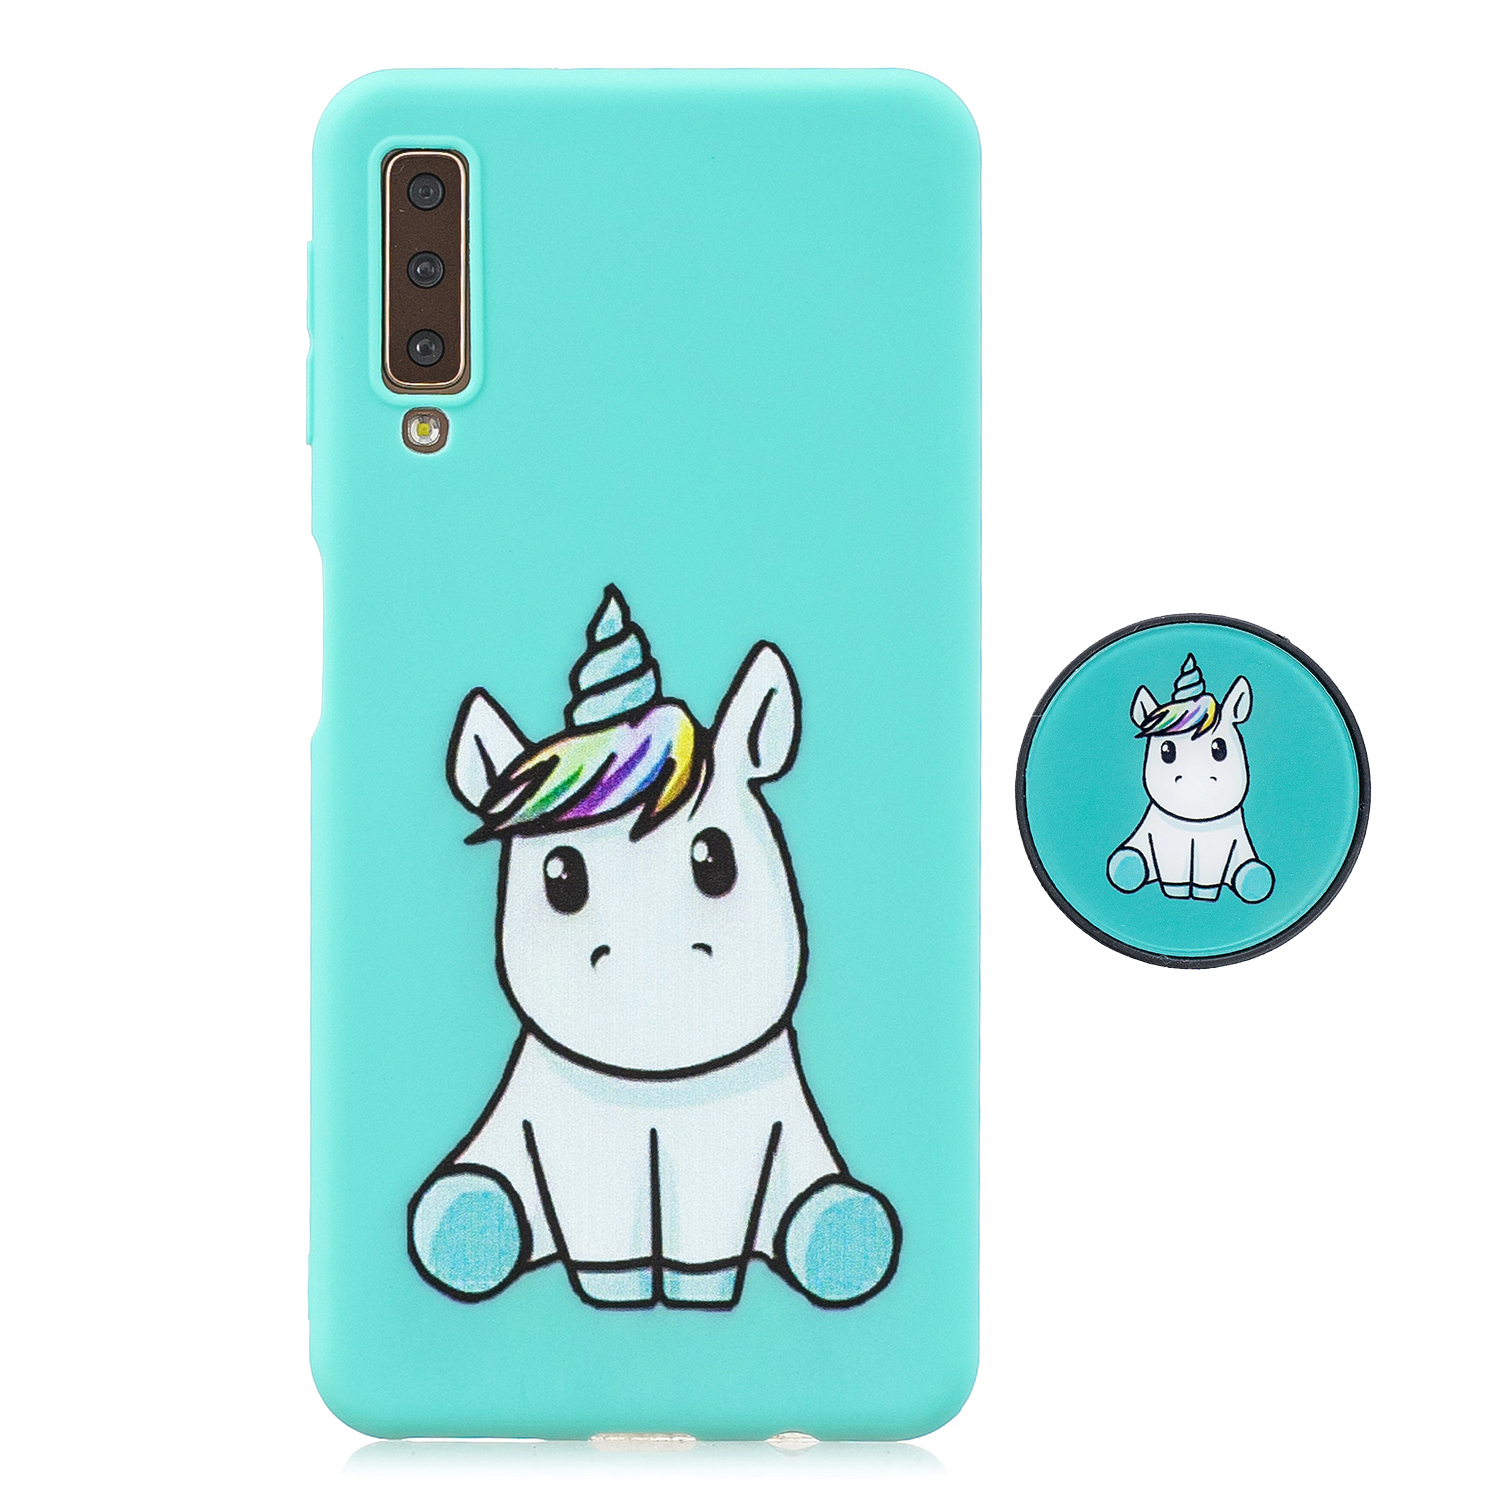 For Samsung A7 2018 A750 Full Cover Protective Phone Case Cartoon Pattern Solid Color TPU Phone Case with Adjustable Bracket 5